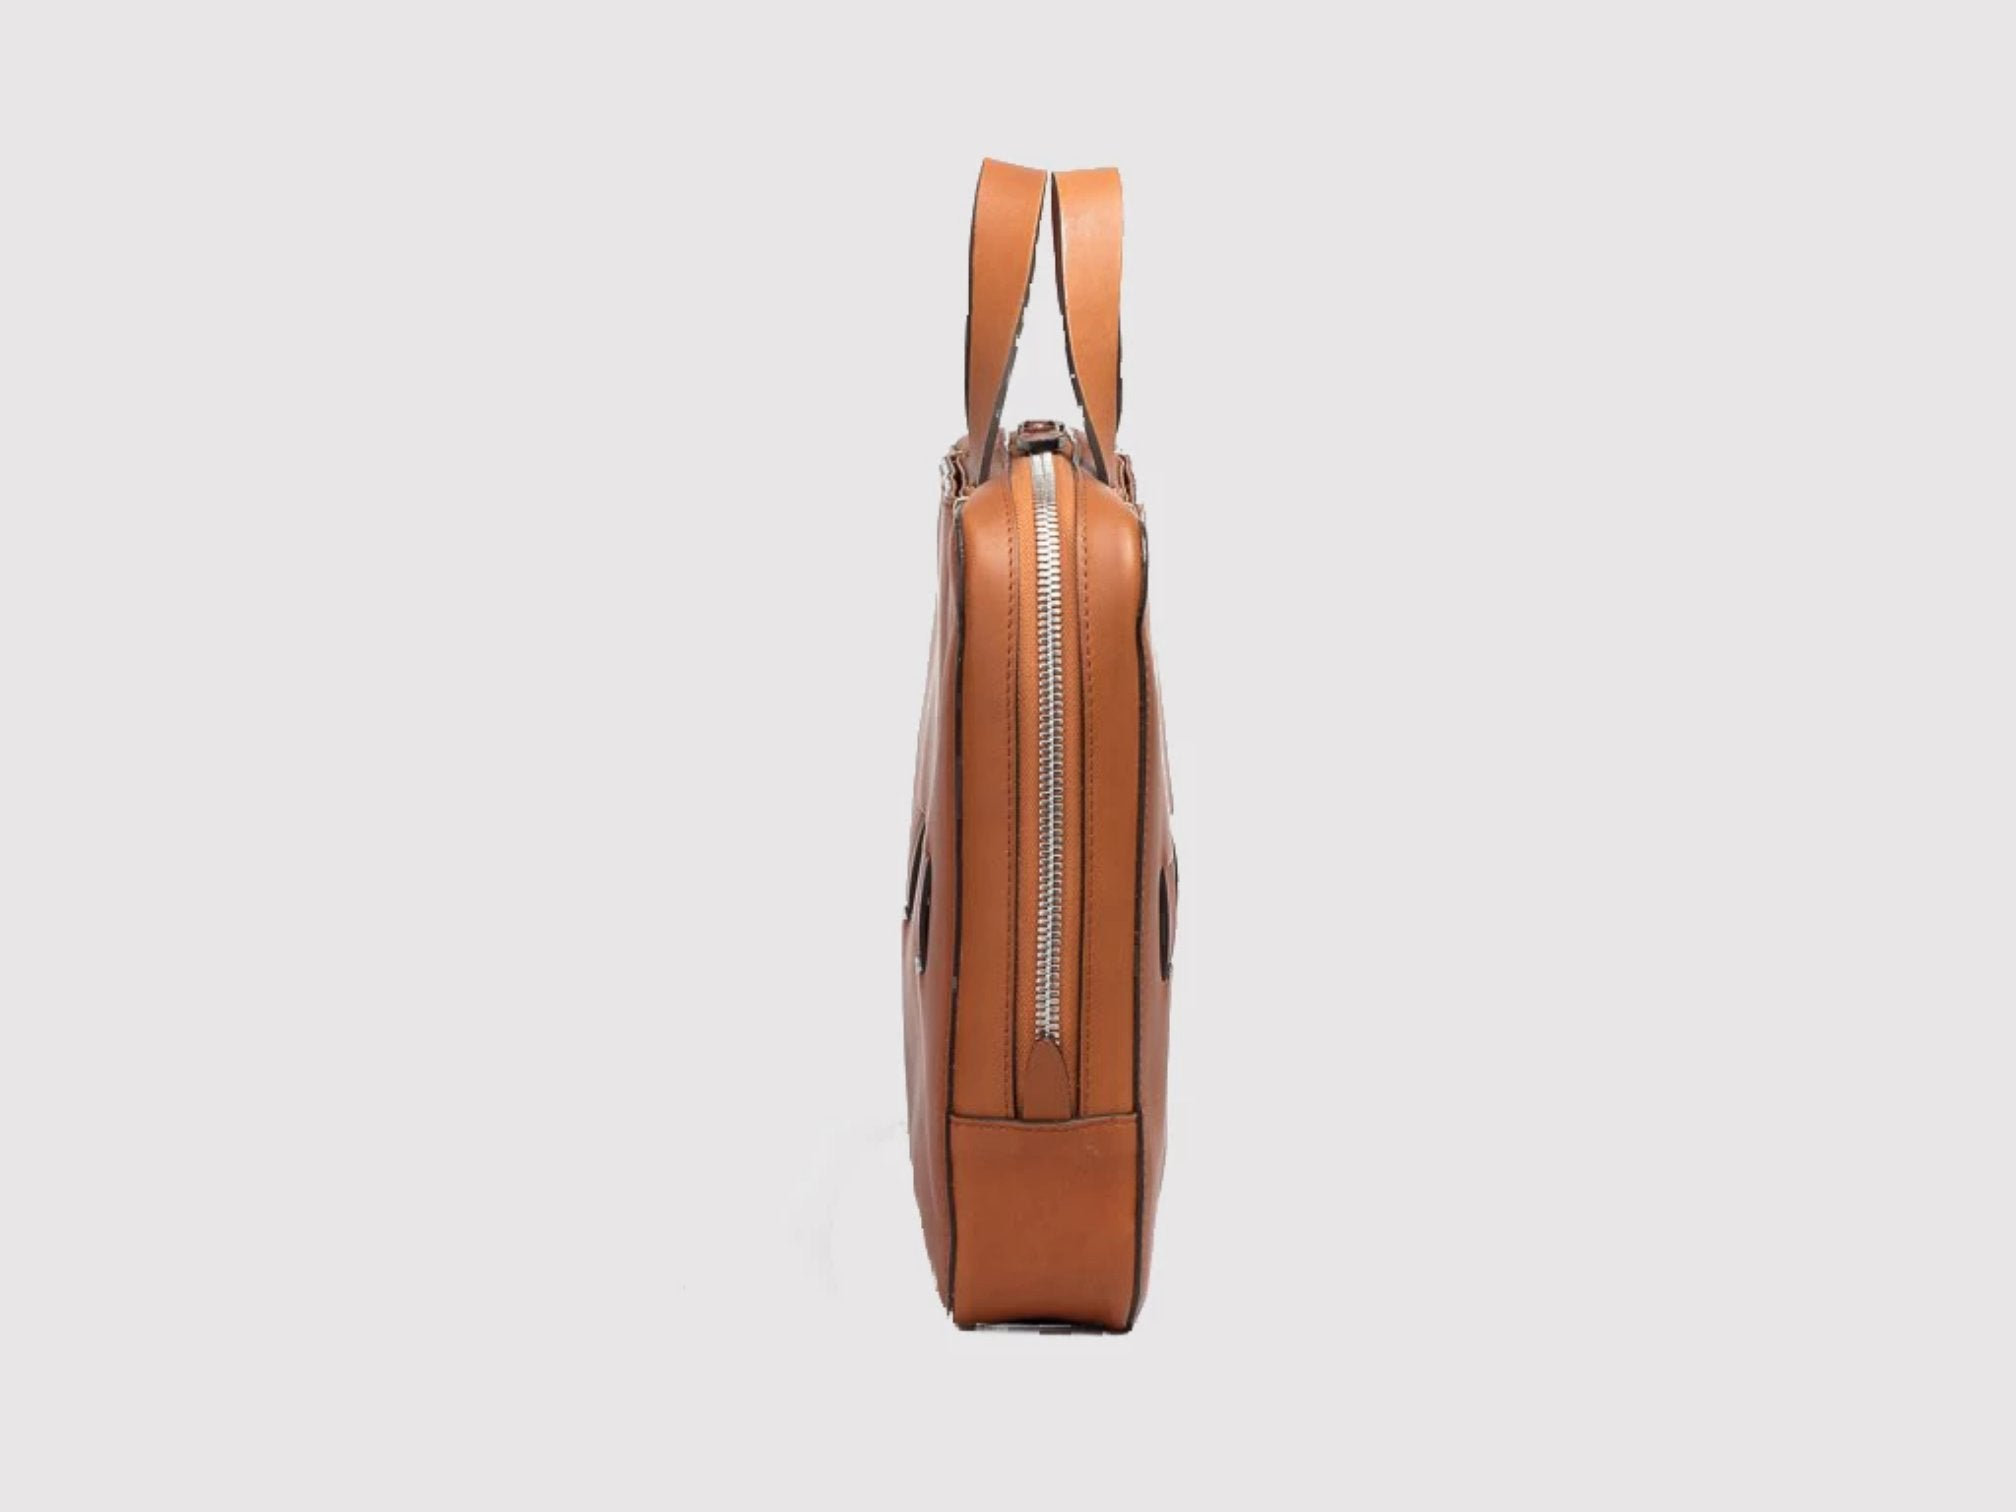 anson calder slim brief french calfskin leather *hover _cognac